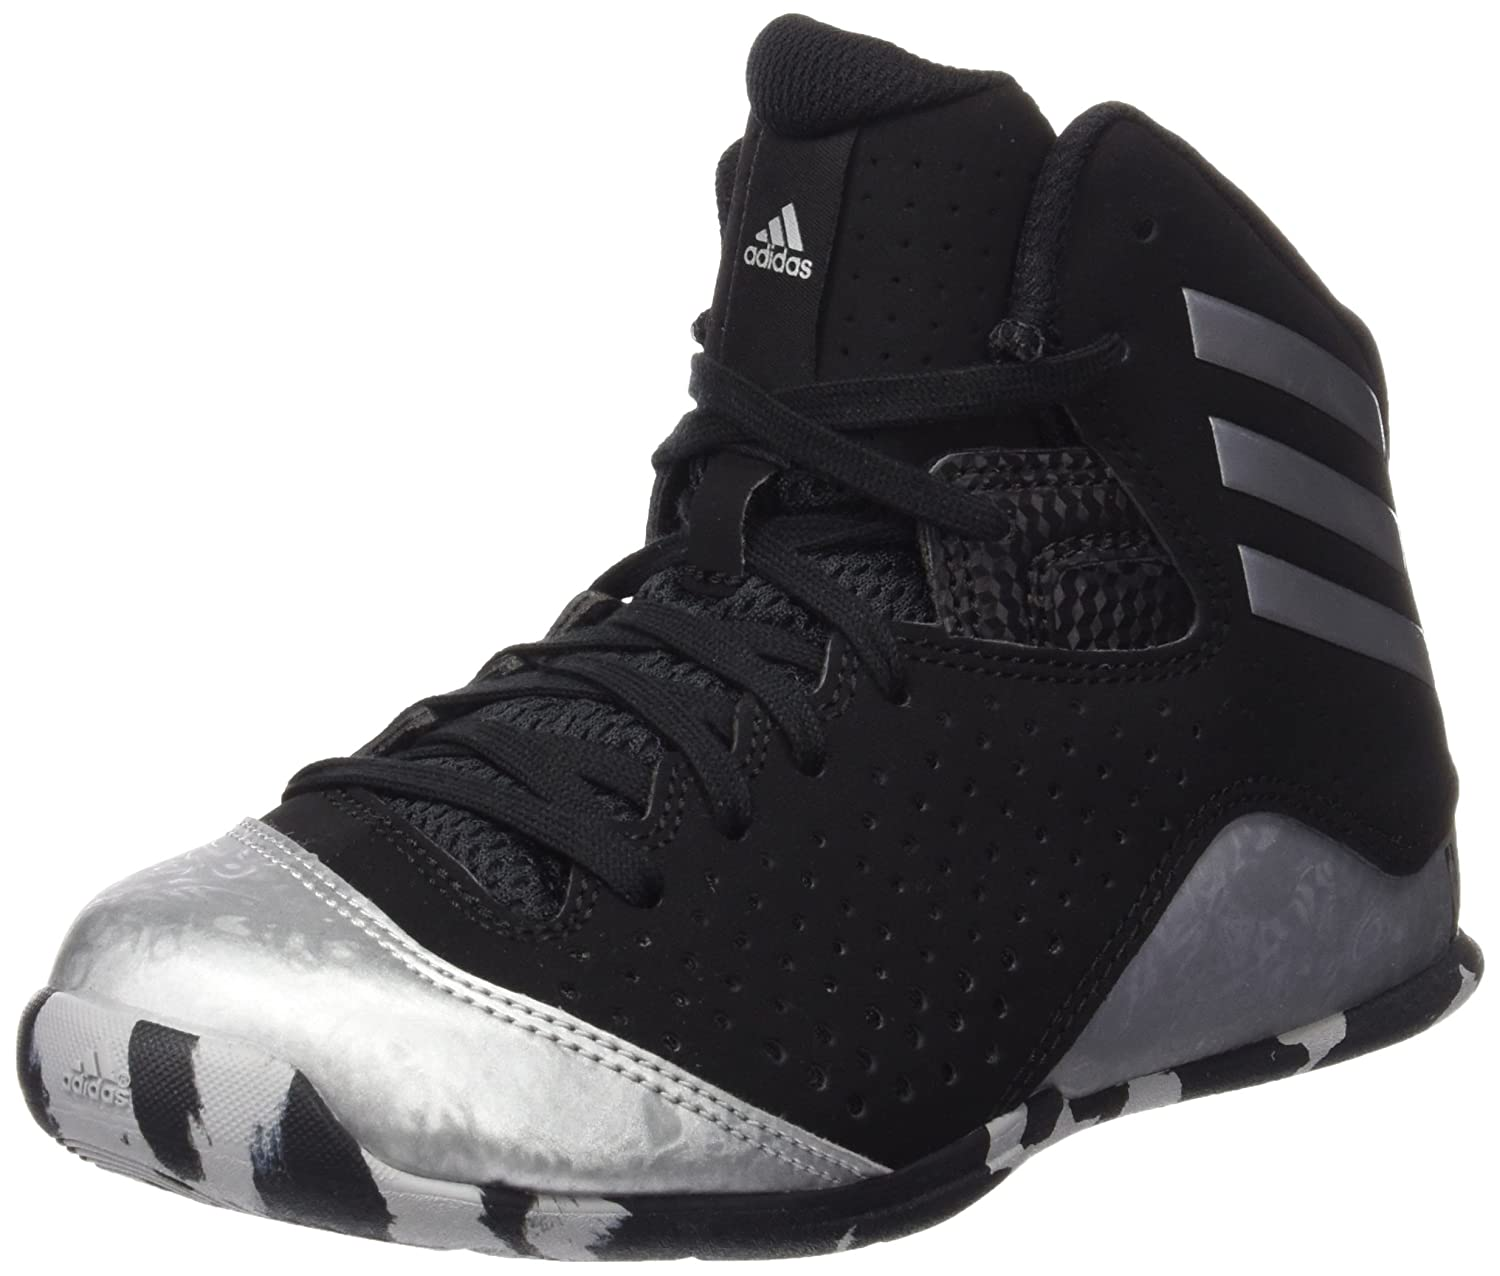 wholesale dealer 443cb 0796e Adidas Unisex Nxt Lvl SPD Iv NBA K Black and Silver Sports Shoes - 4  UK India (36.7 EU)  Buy Online at Low Prices in India - Amazon.in